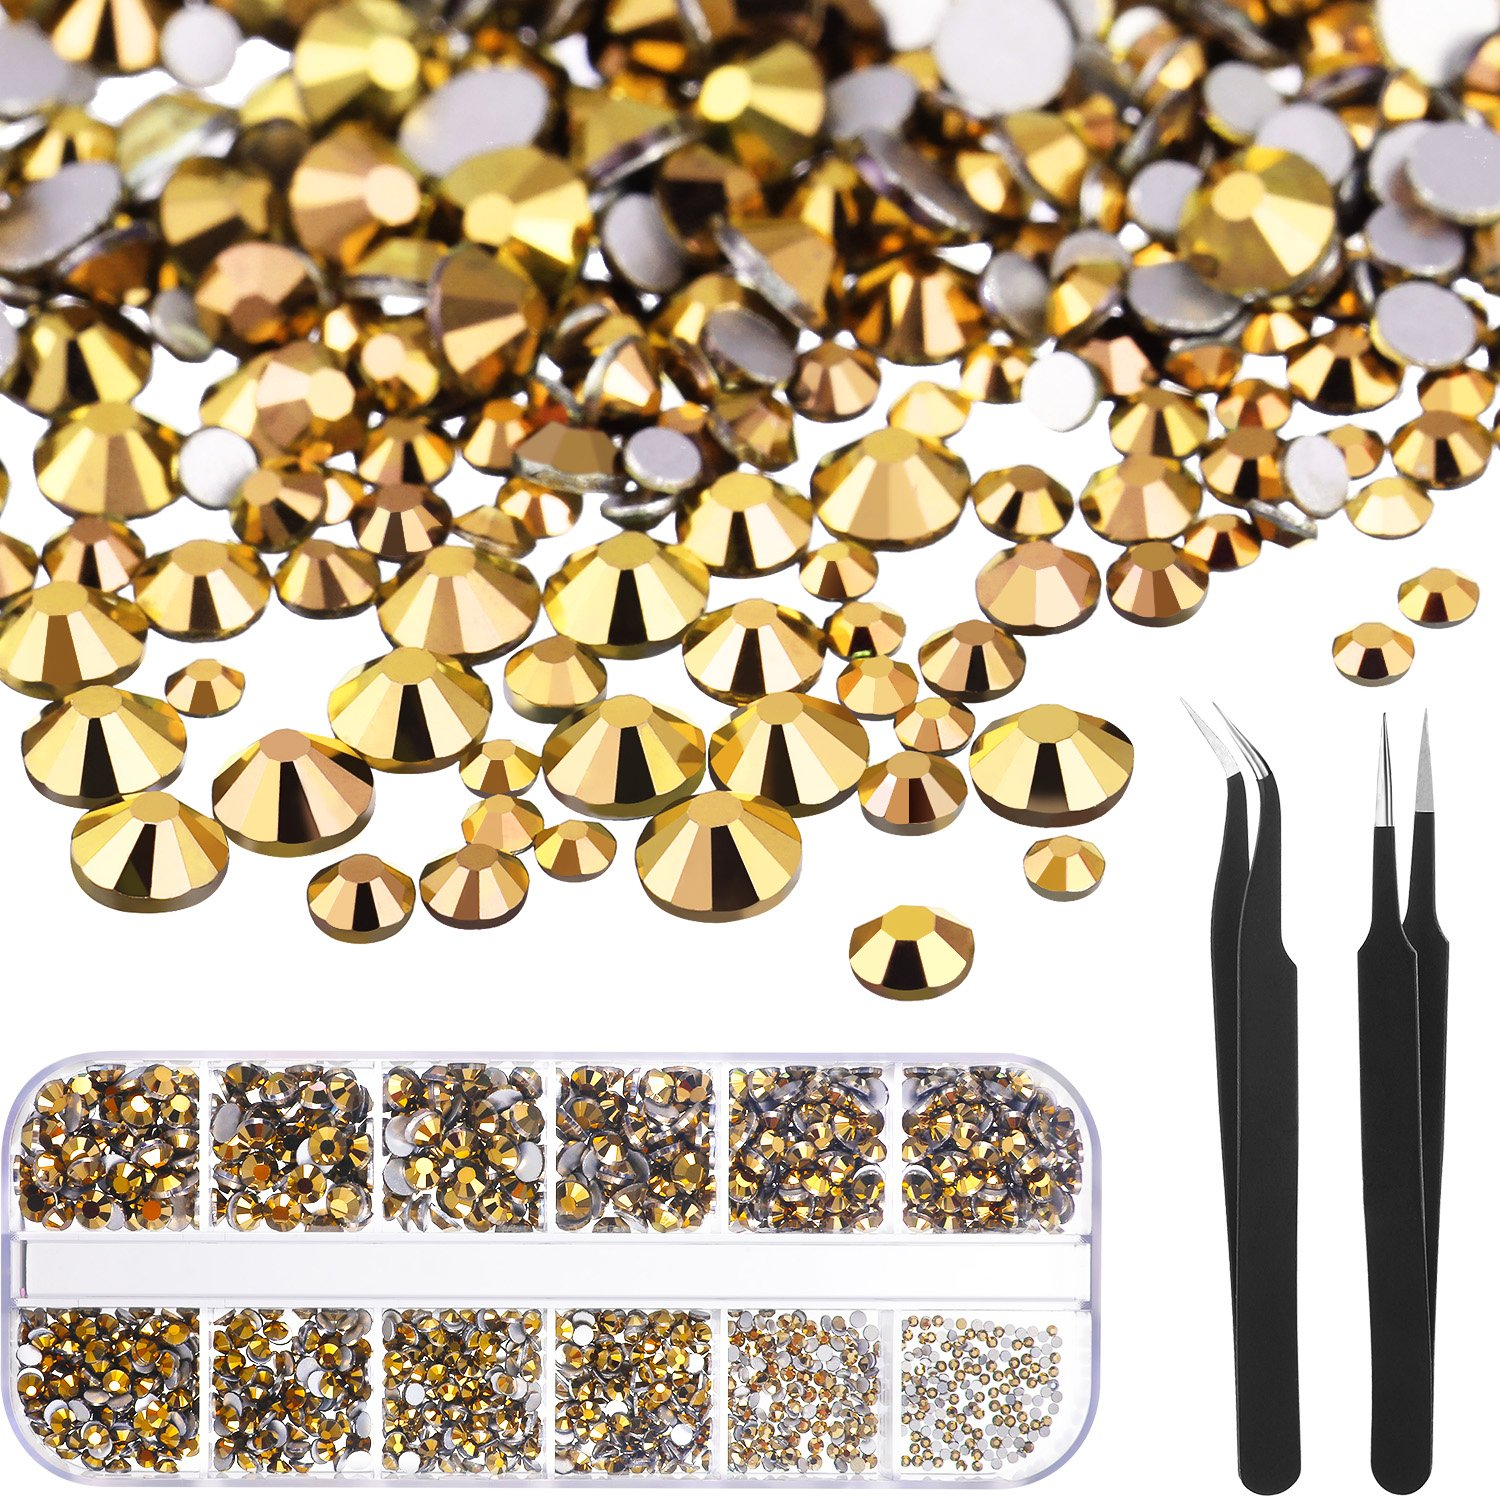 1728 Pieces Crystals Nail Art Rhinestones Round Beads Flatback Glass Charms Gems Stones and 2 Pieces Tweezers with Storage Organizer Box, SS3 6 10 12 16 20, 288 Pieces Each Size (Clear) TecUnite